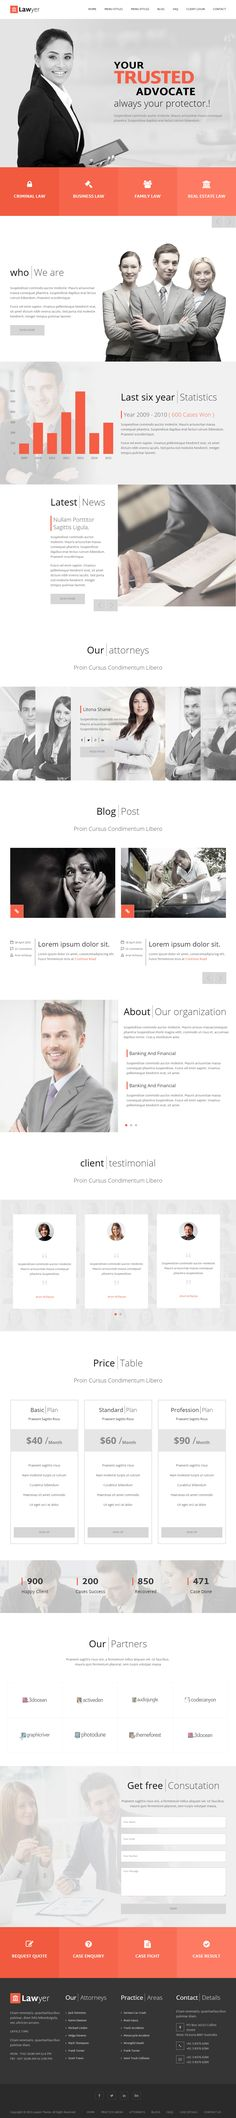 Lawyer is Premium full Responsive #HTML5 #Lawyers template. Bootstrap 3 Framework. Retina Ready. #VideoBackground. Google Fonts. Test free demo at: http://www.responsivemiracle.com/cms/lawyer-premium-responsive-html5-template/